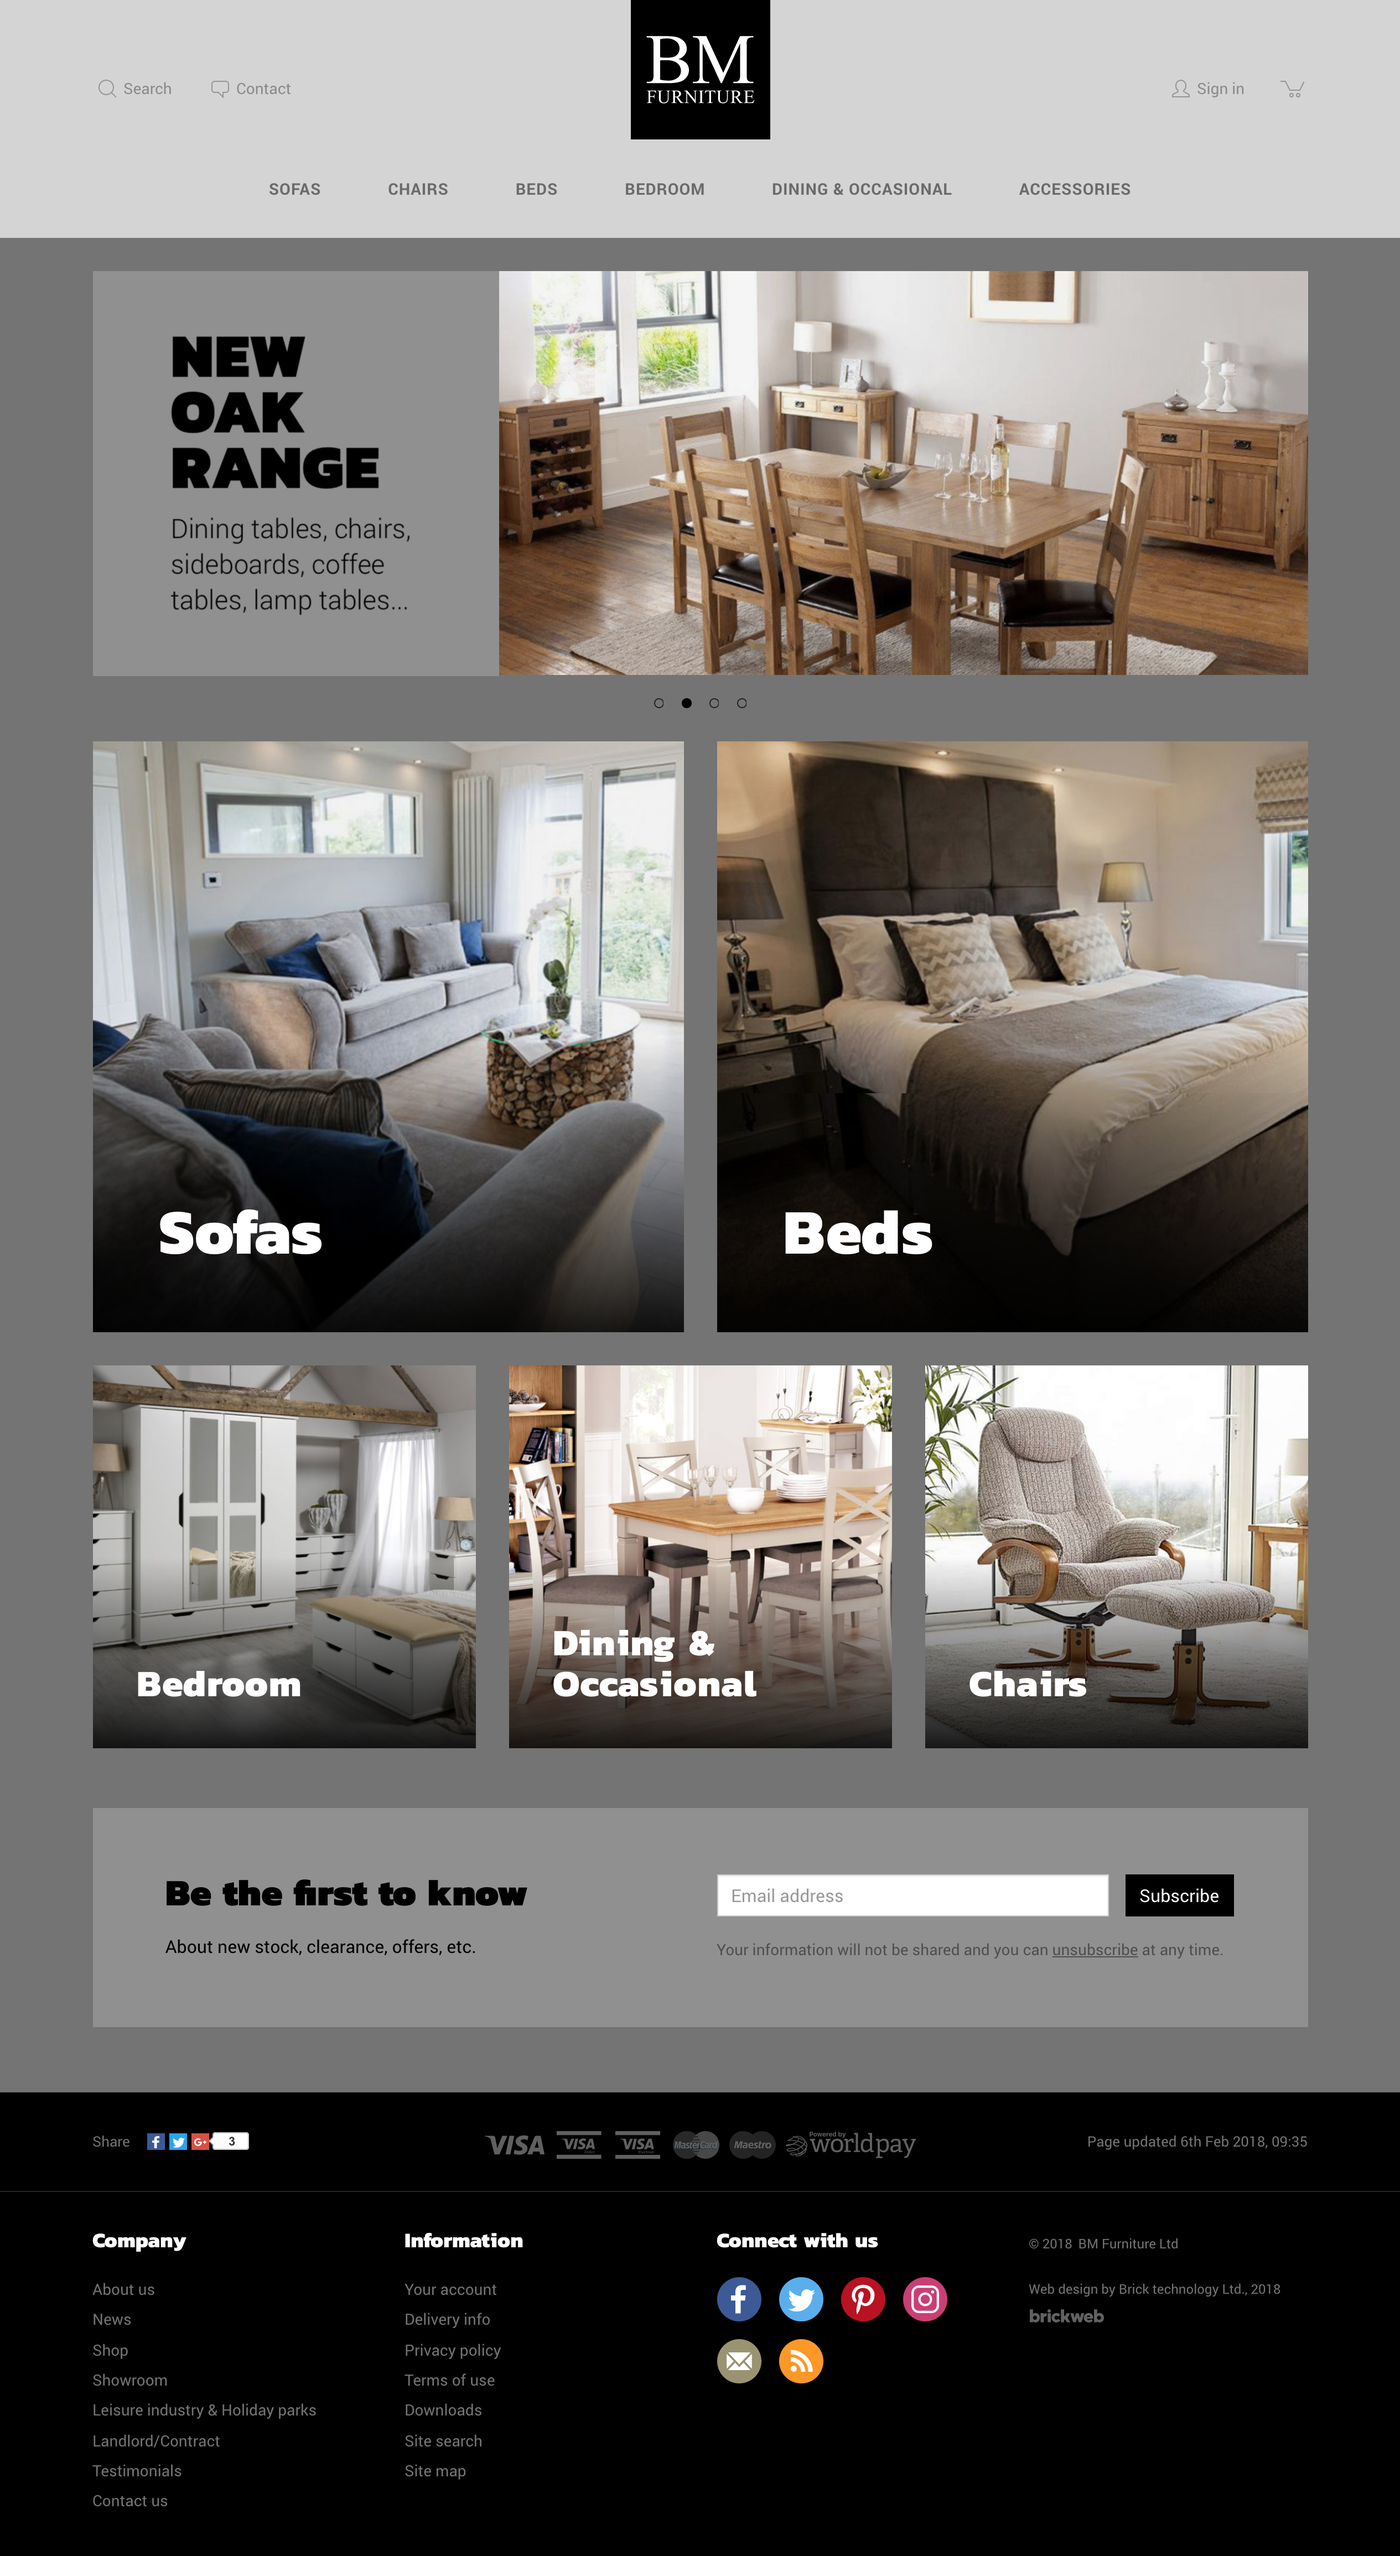 BM Furniture Home page